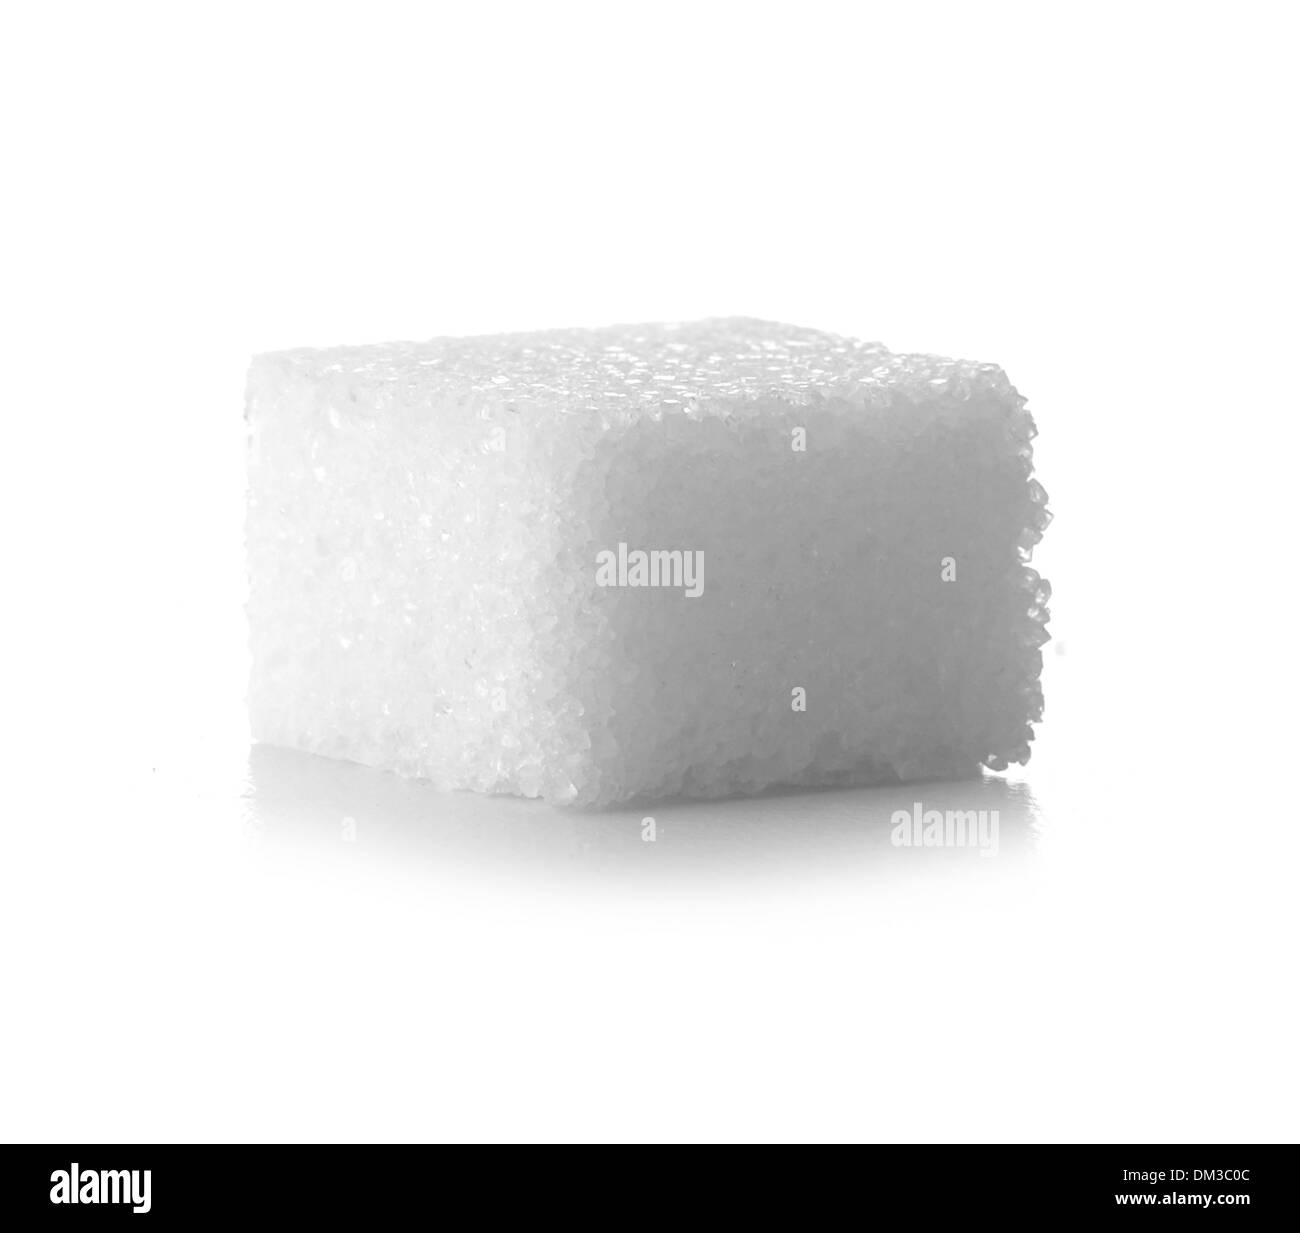 Sugar cube cut out on white background - Stock Image